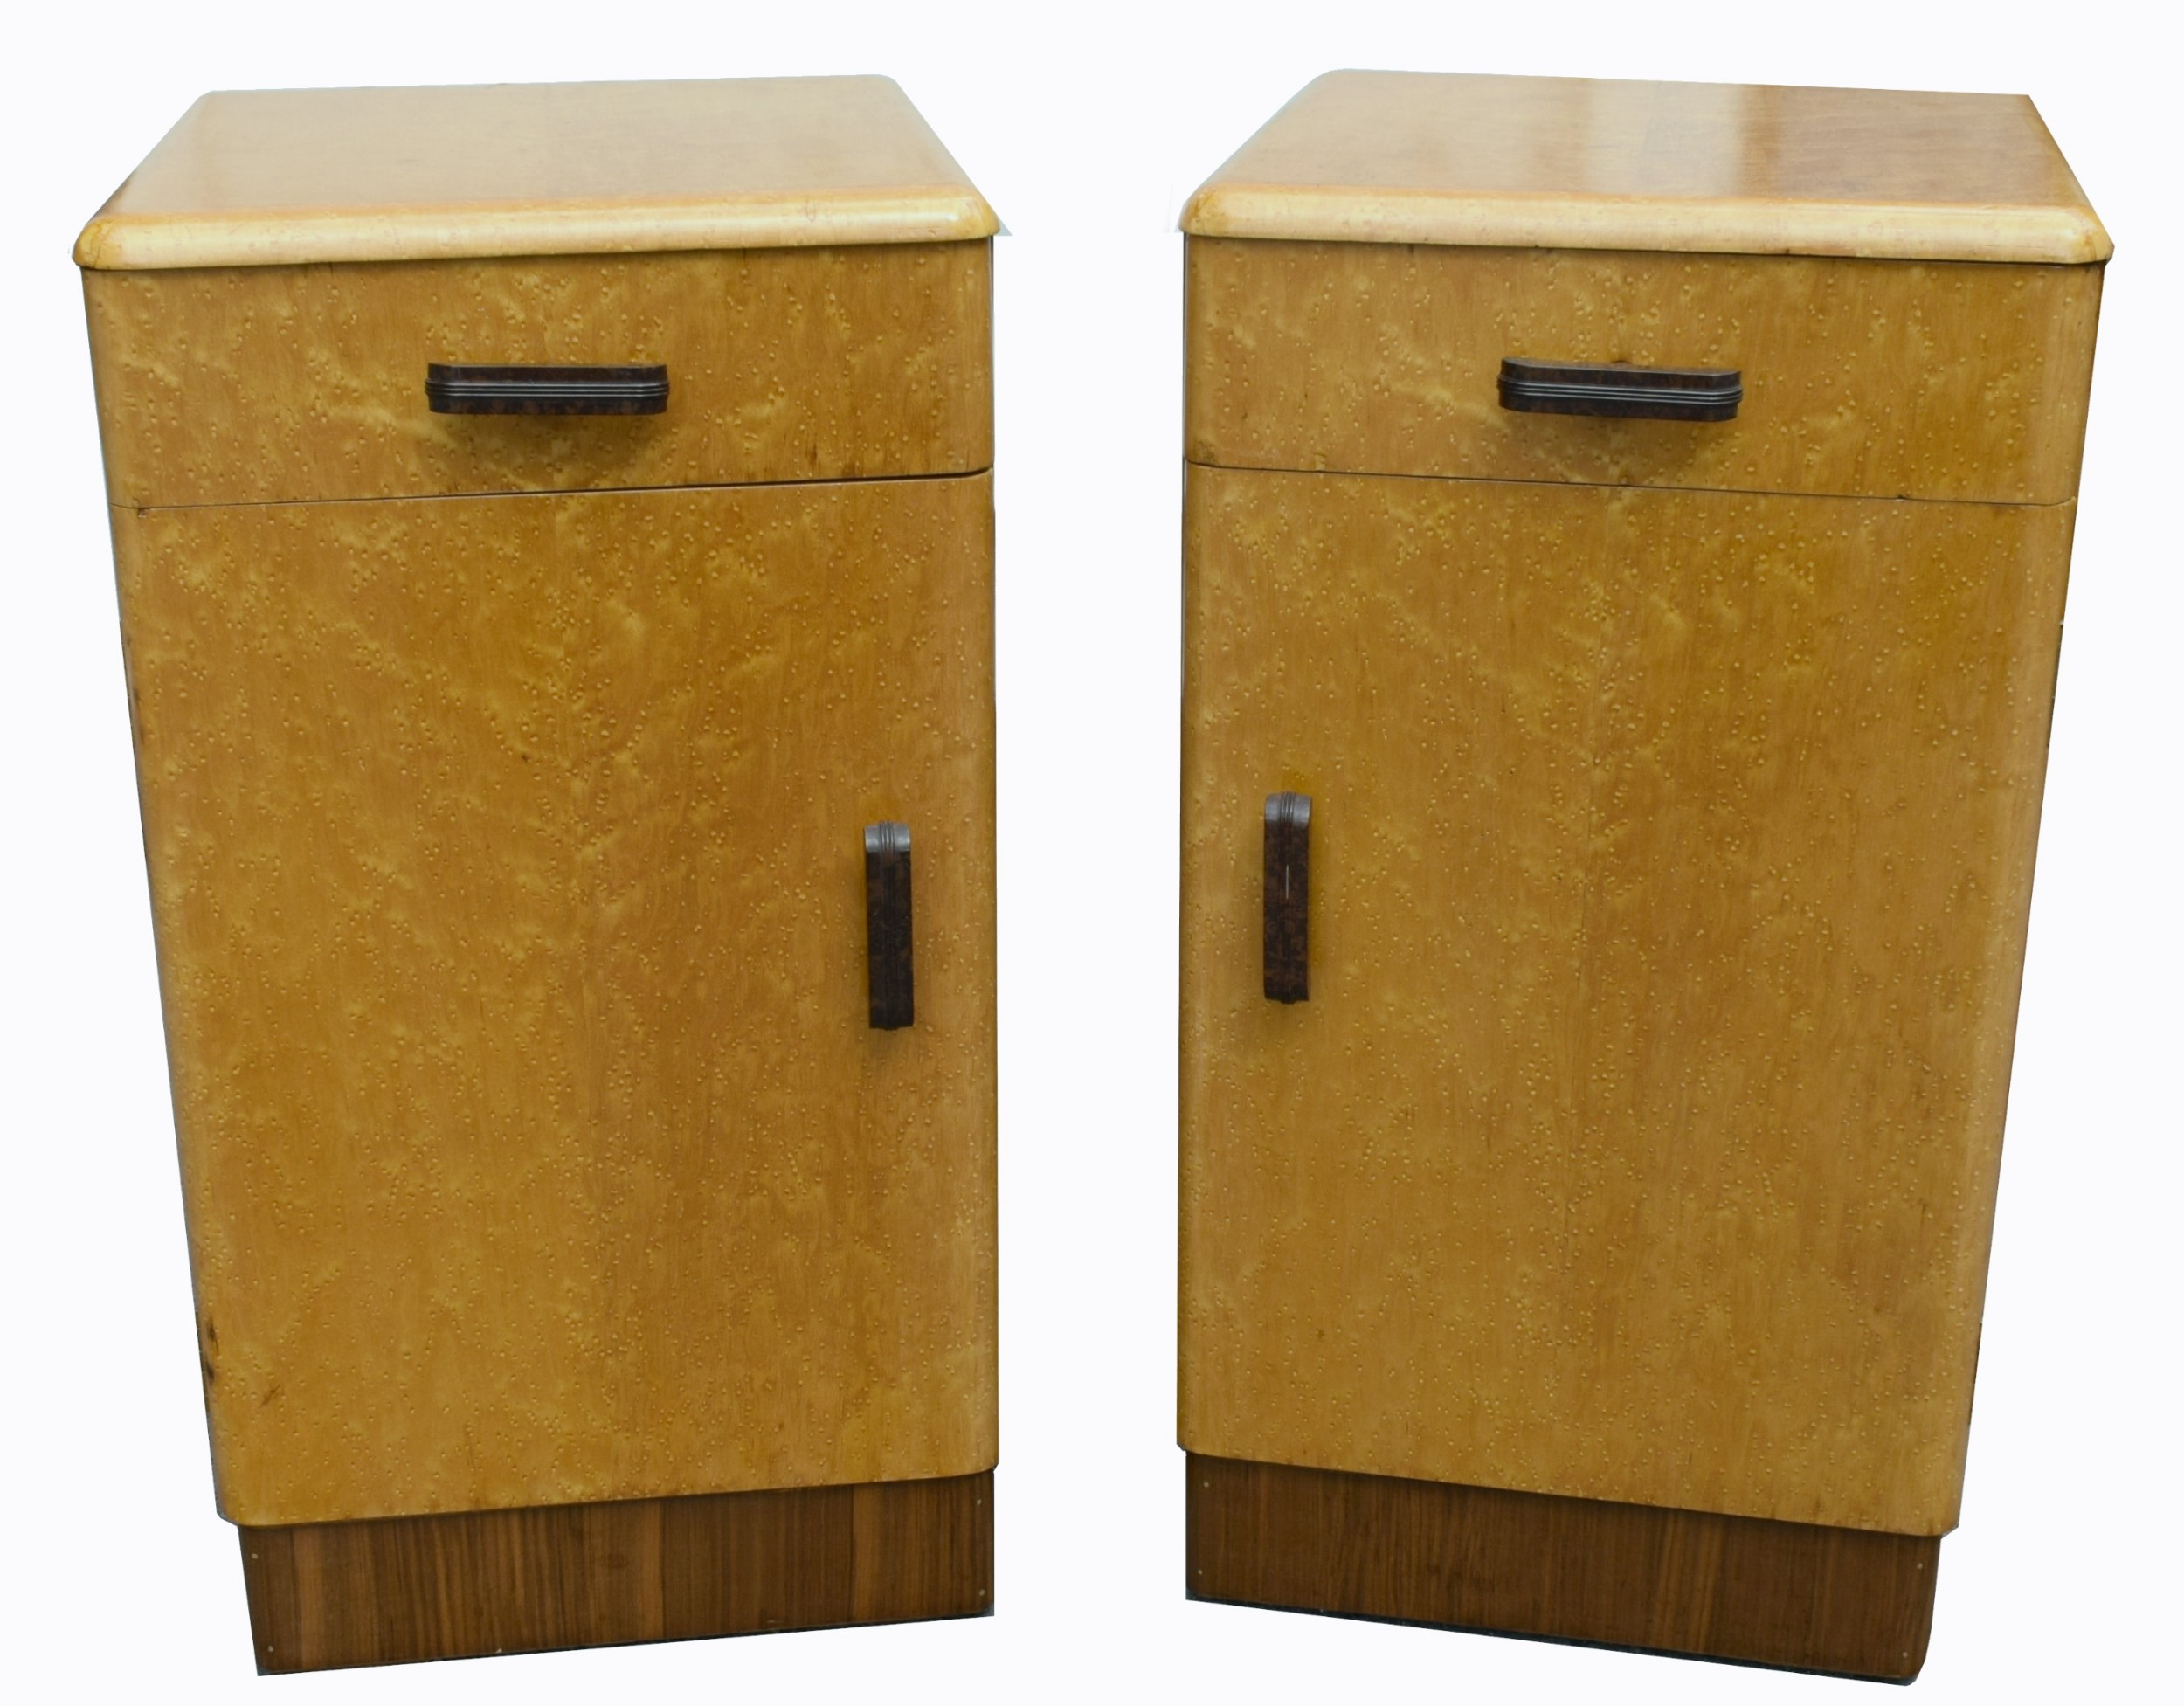 pair of matching 1930s art deco bedside cabinets in blonde maple